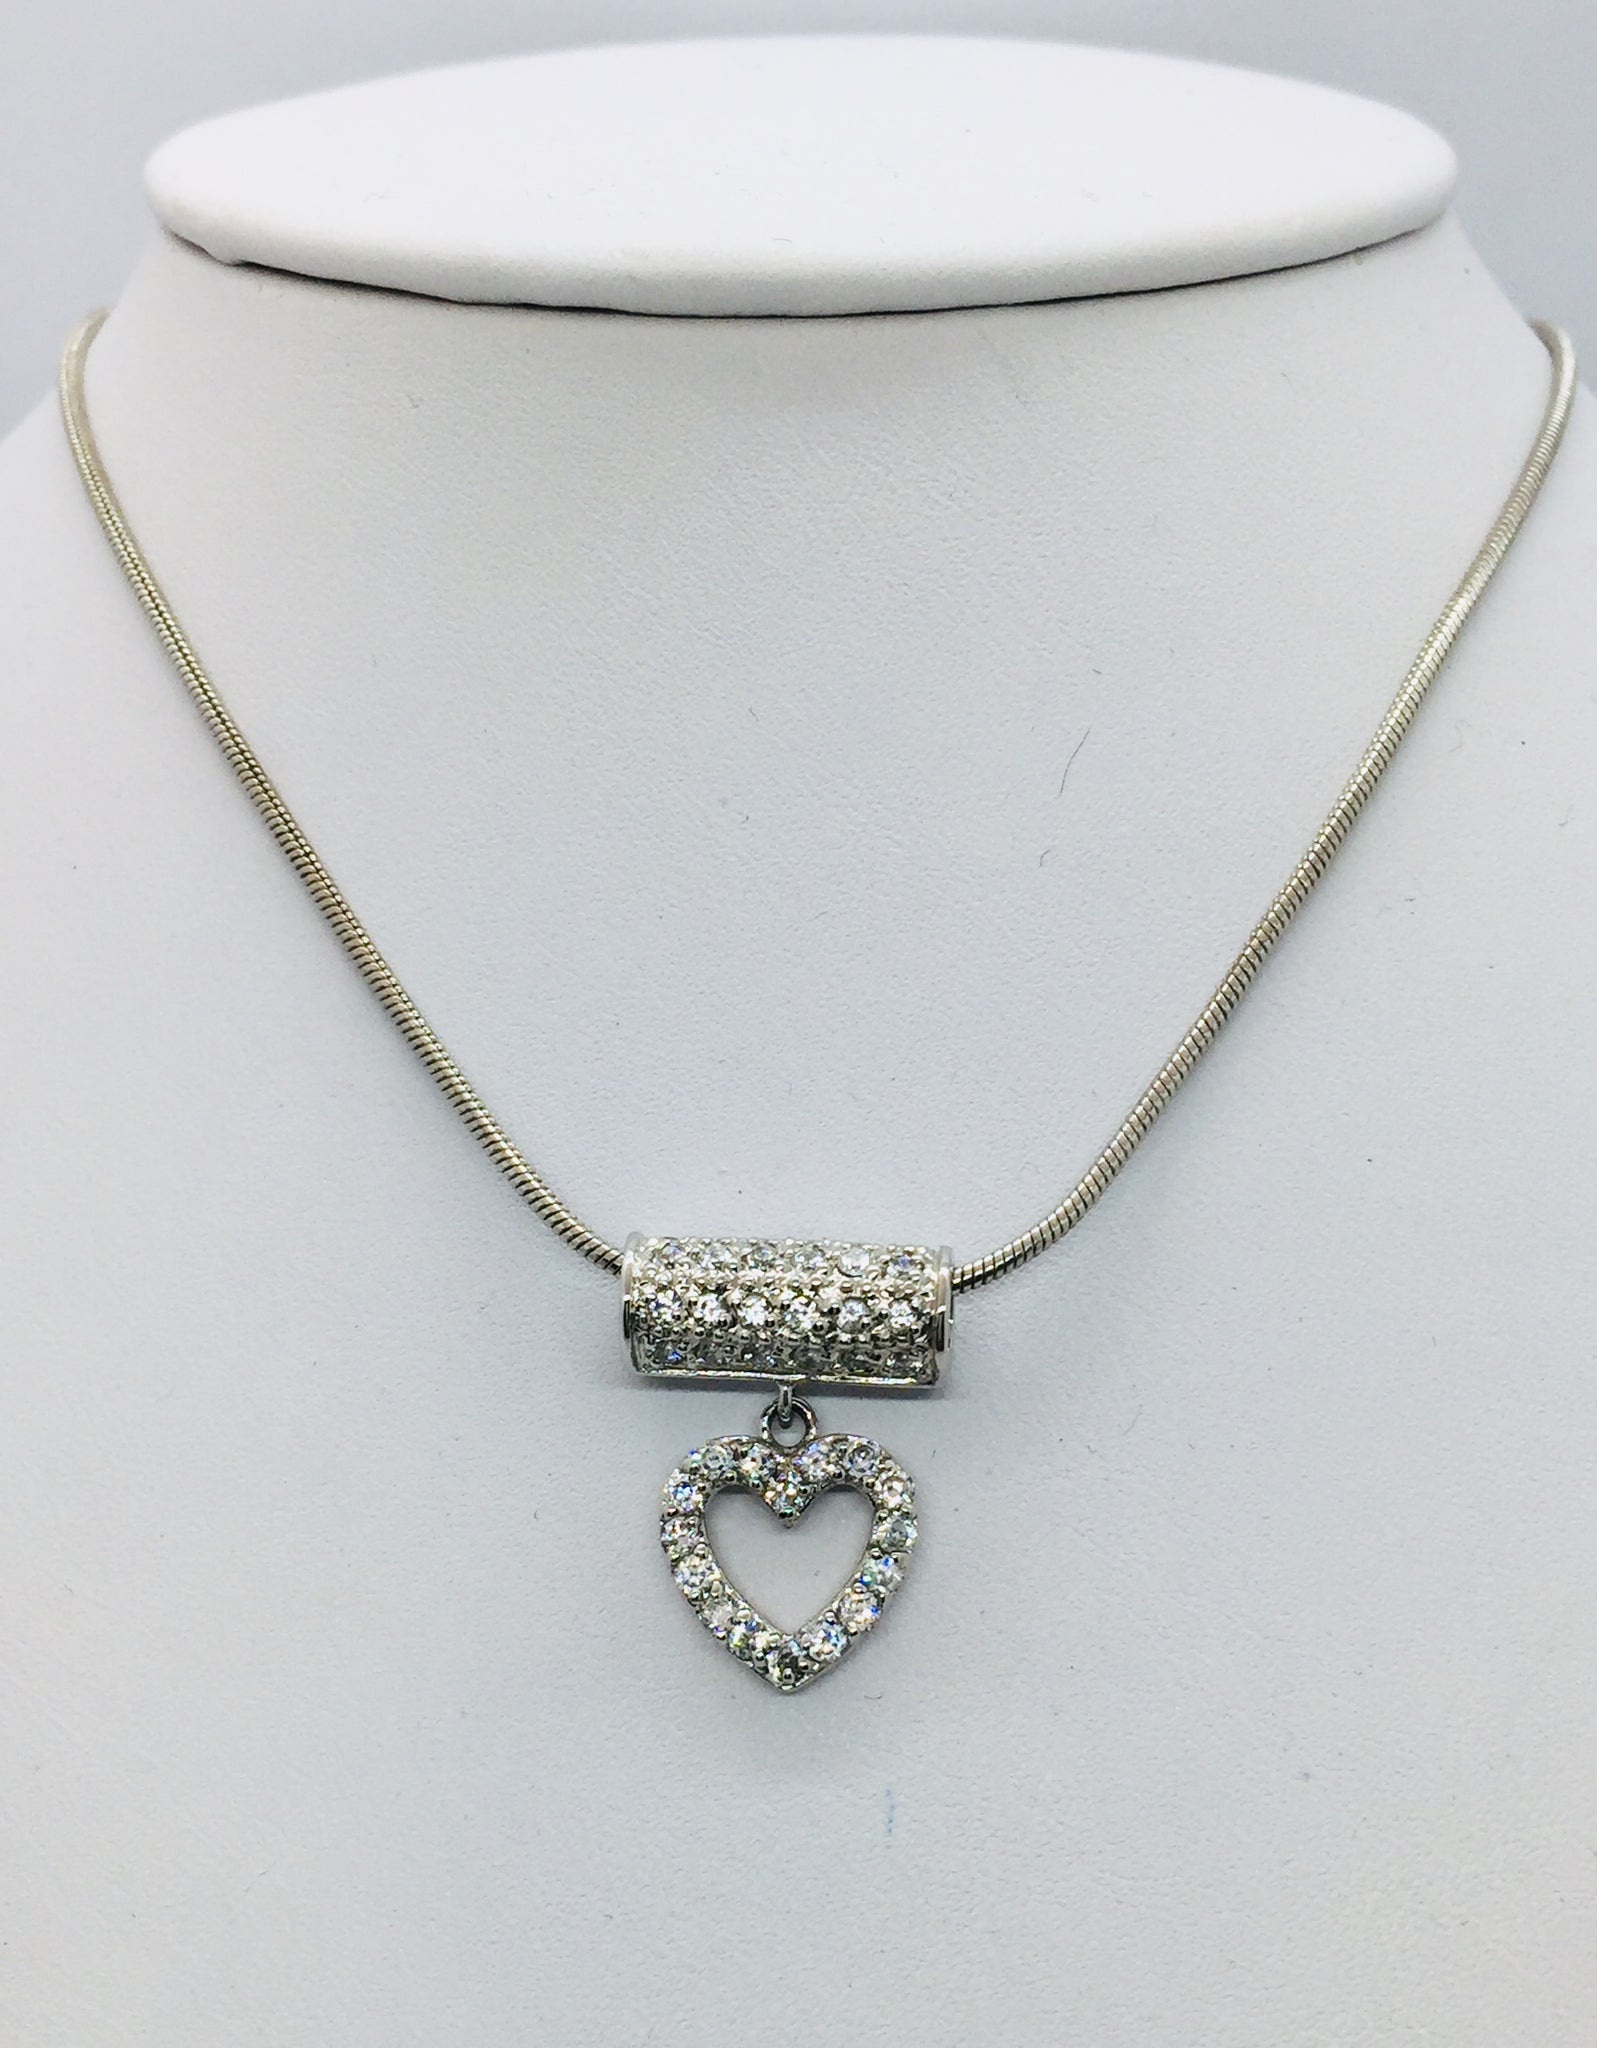 Solid Sterling Silver Cubic Zircon Heart Slide With Chain, 16""